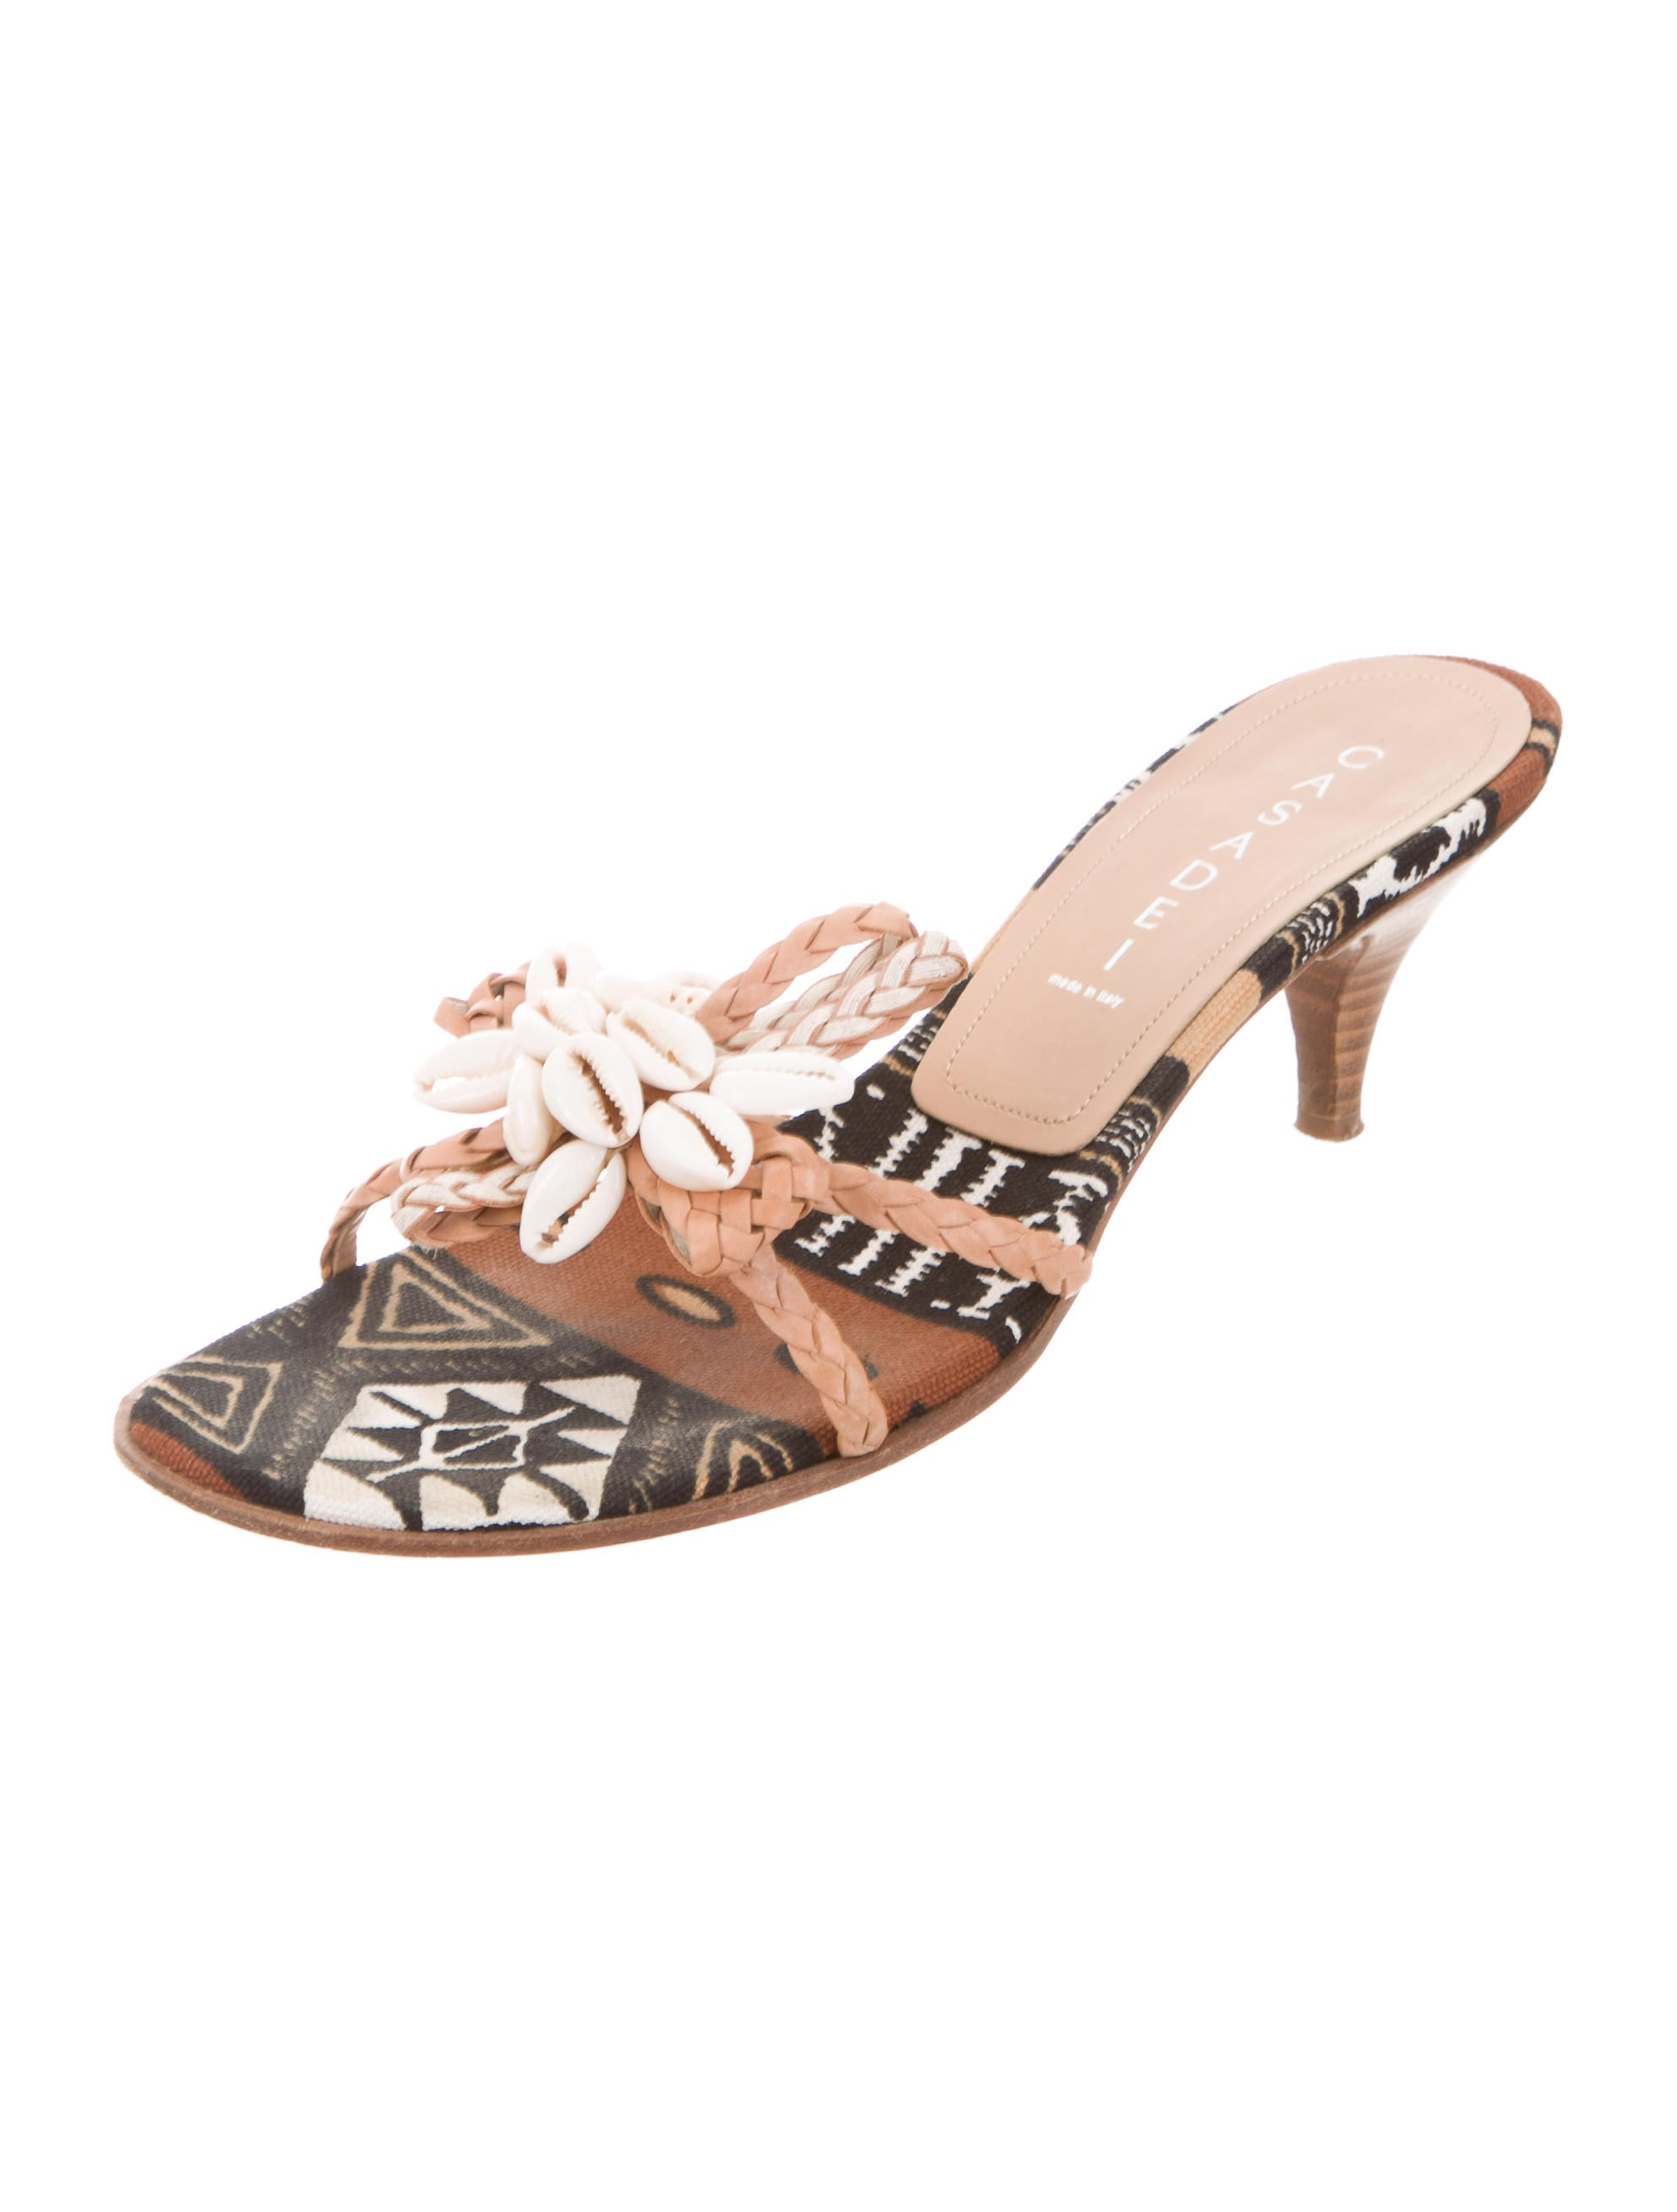 Casadei Seashell-Embellished Slide Sandals amazon online discount wholesale price clearance amazing price DEYYrVGdd